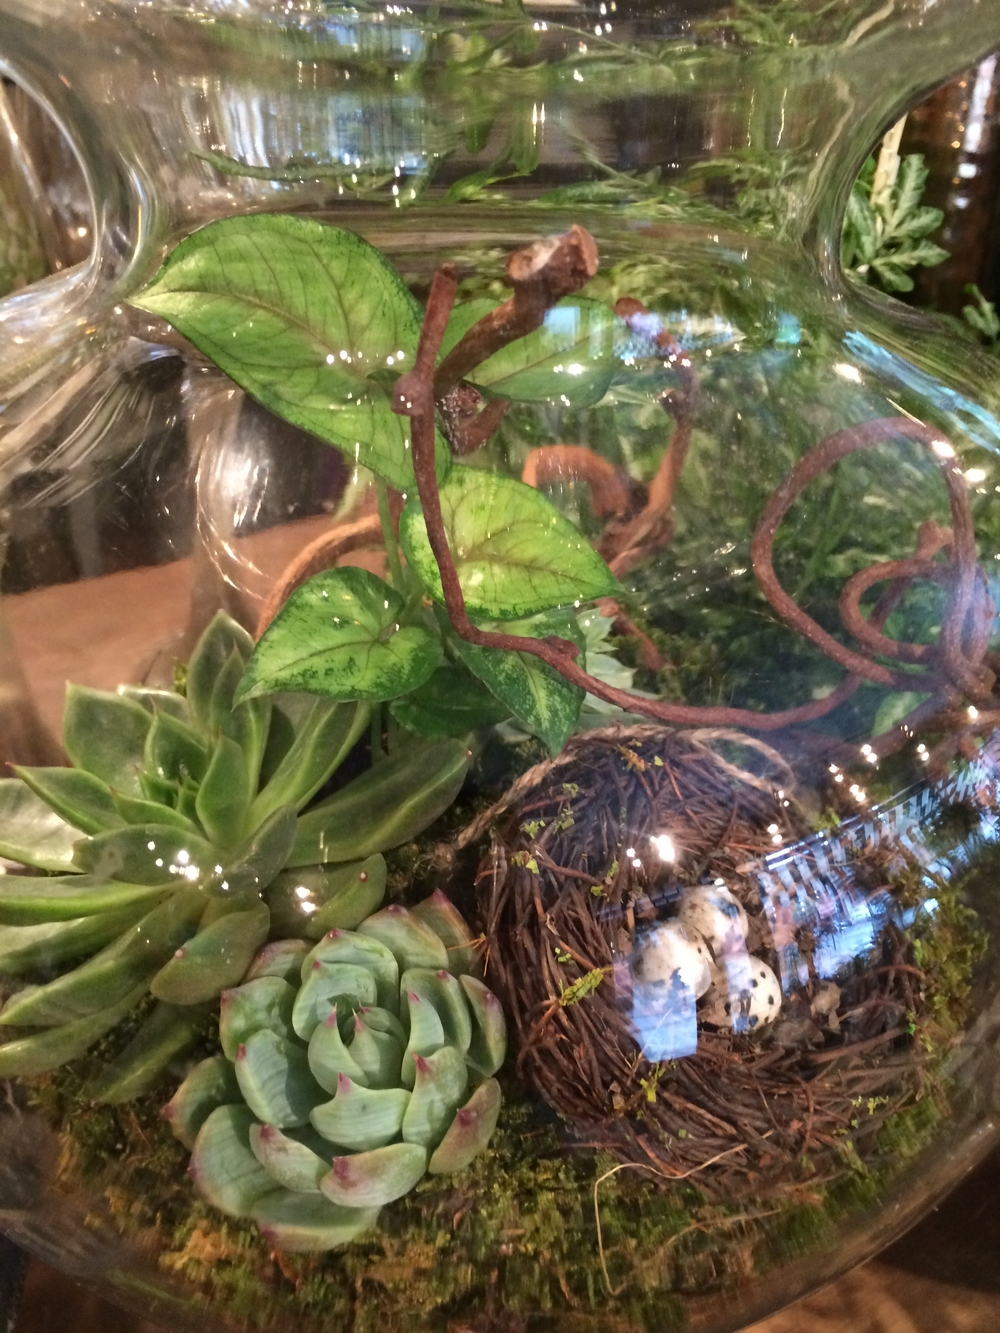 A peak into one of our glass candy jar terrariums reveals a branch of curly kiwi, silvery echeveria, green ferns, soft green moss and even a spring nest